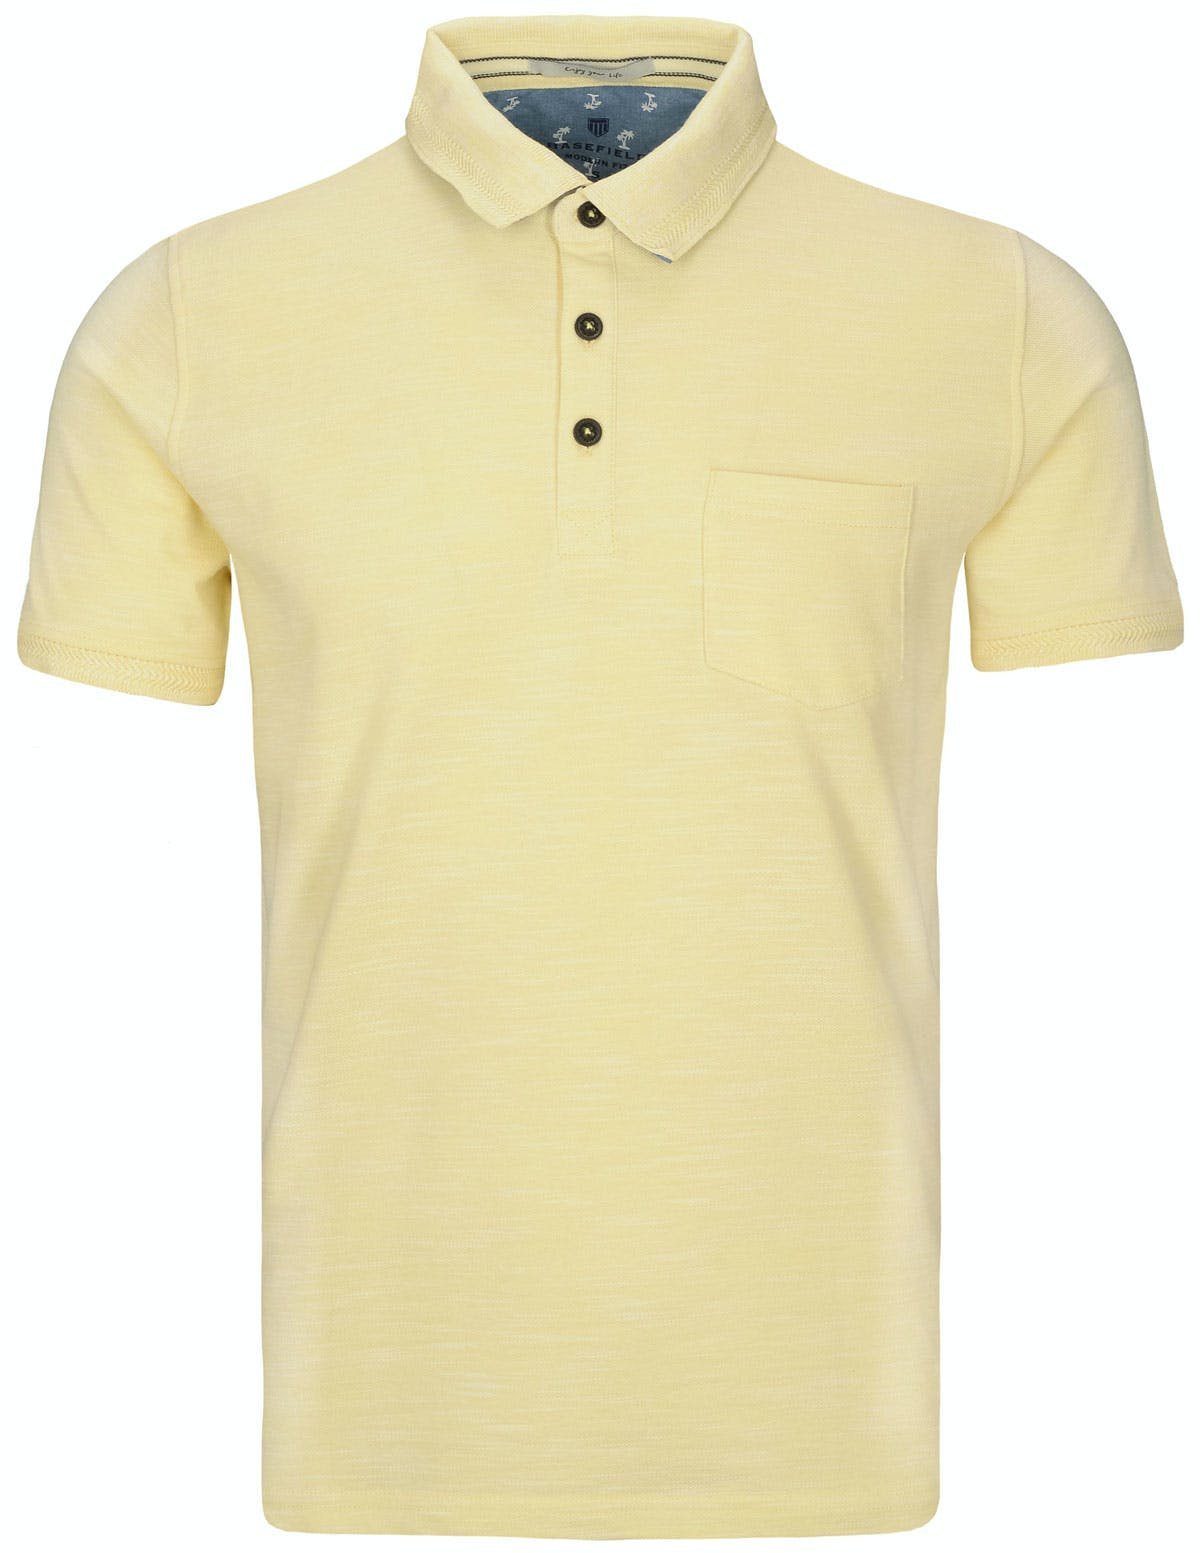 219012624-fresh-lemon__polo-shirt__all